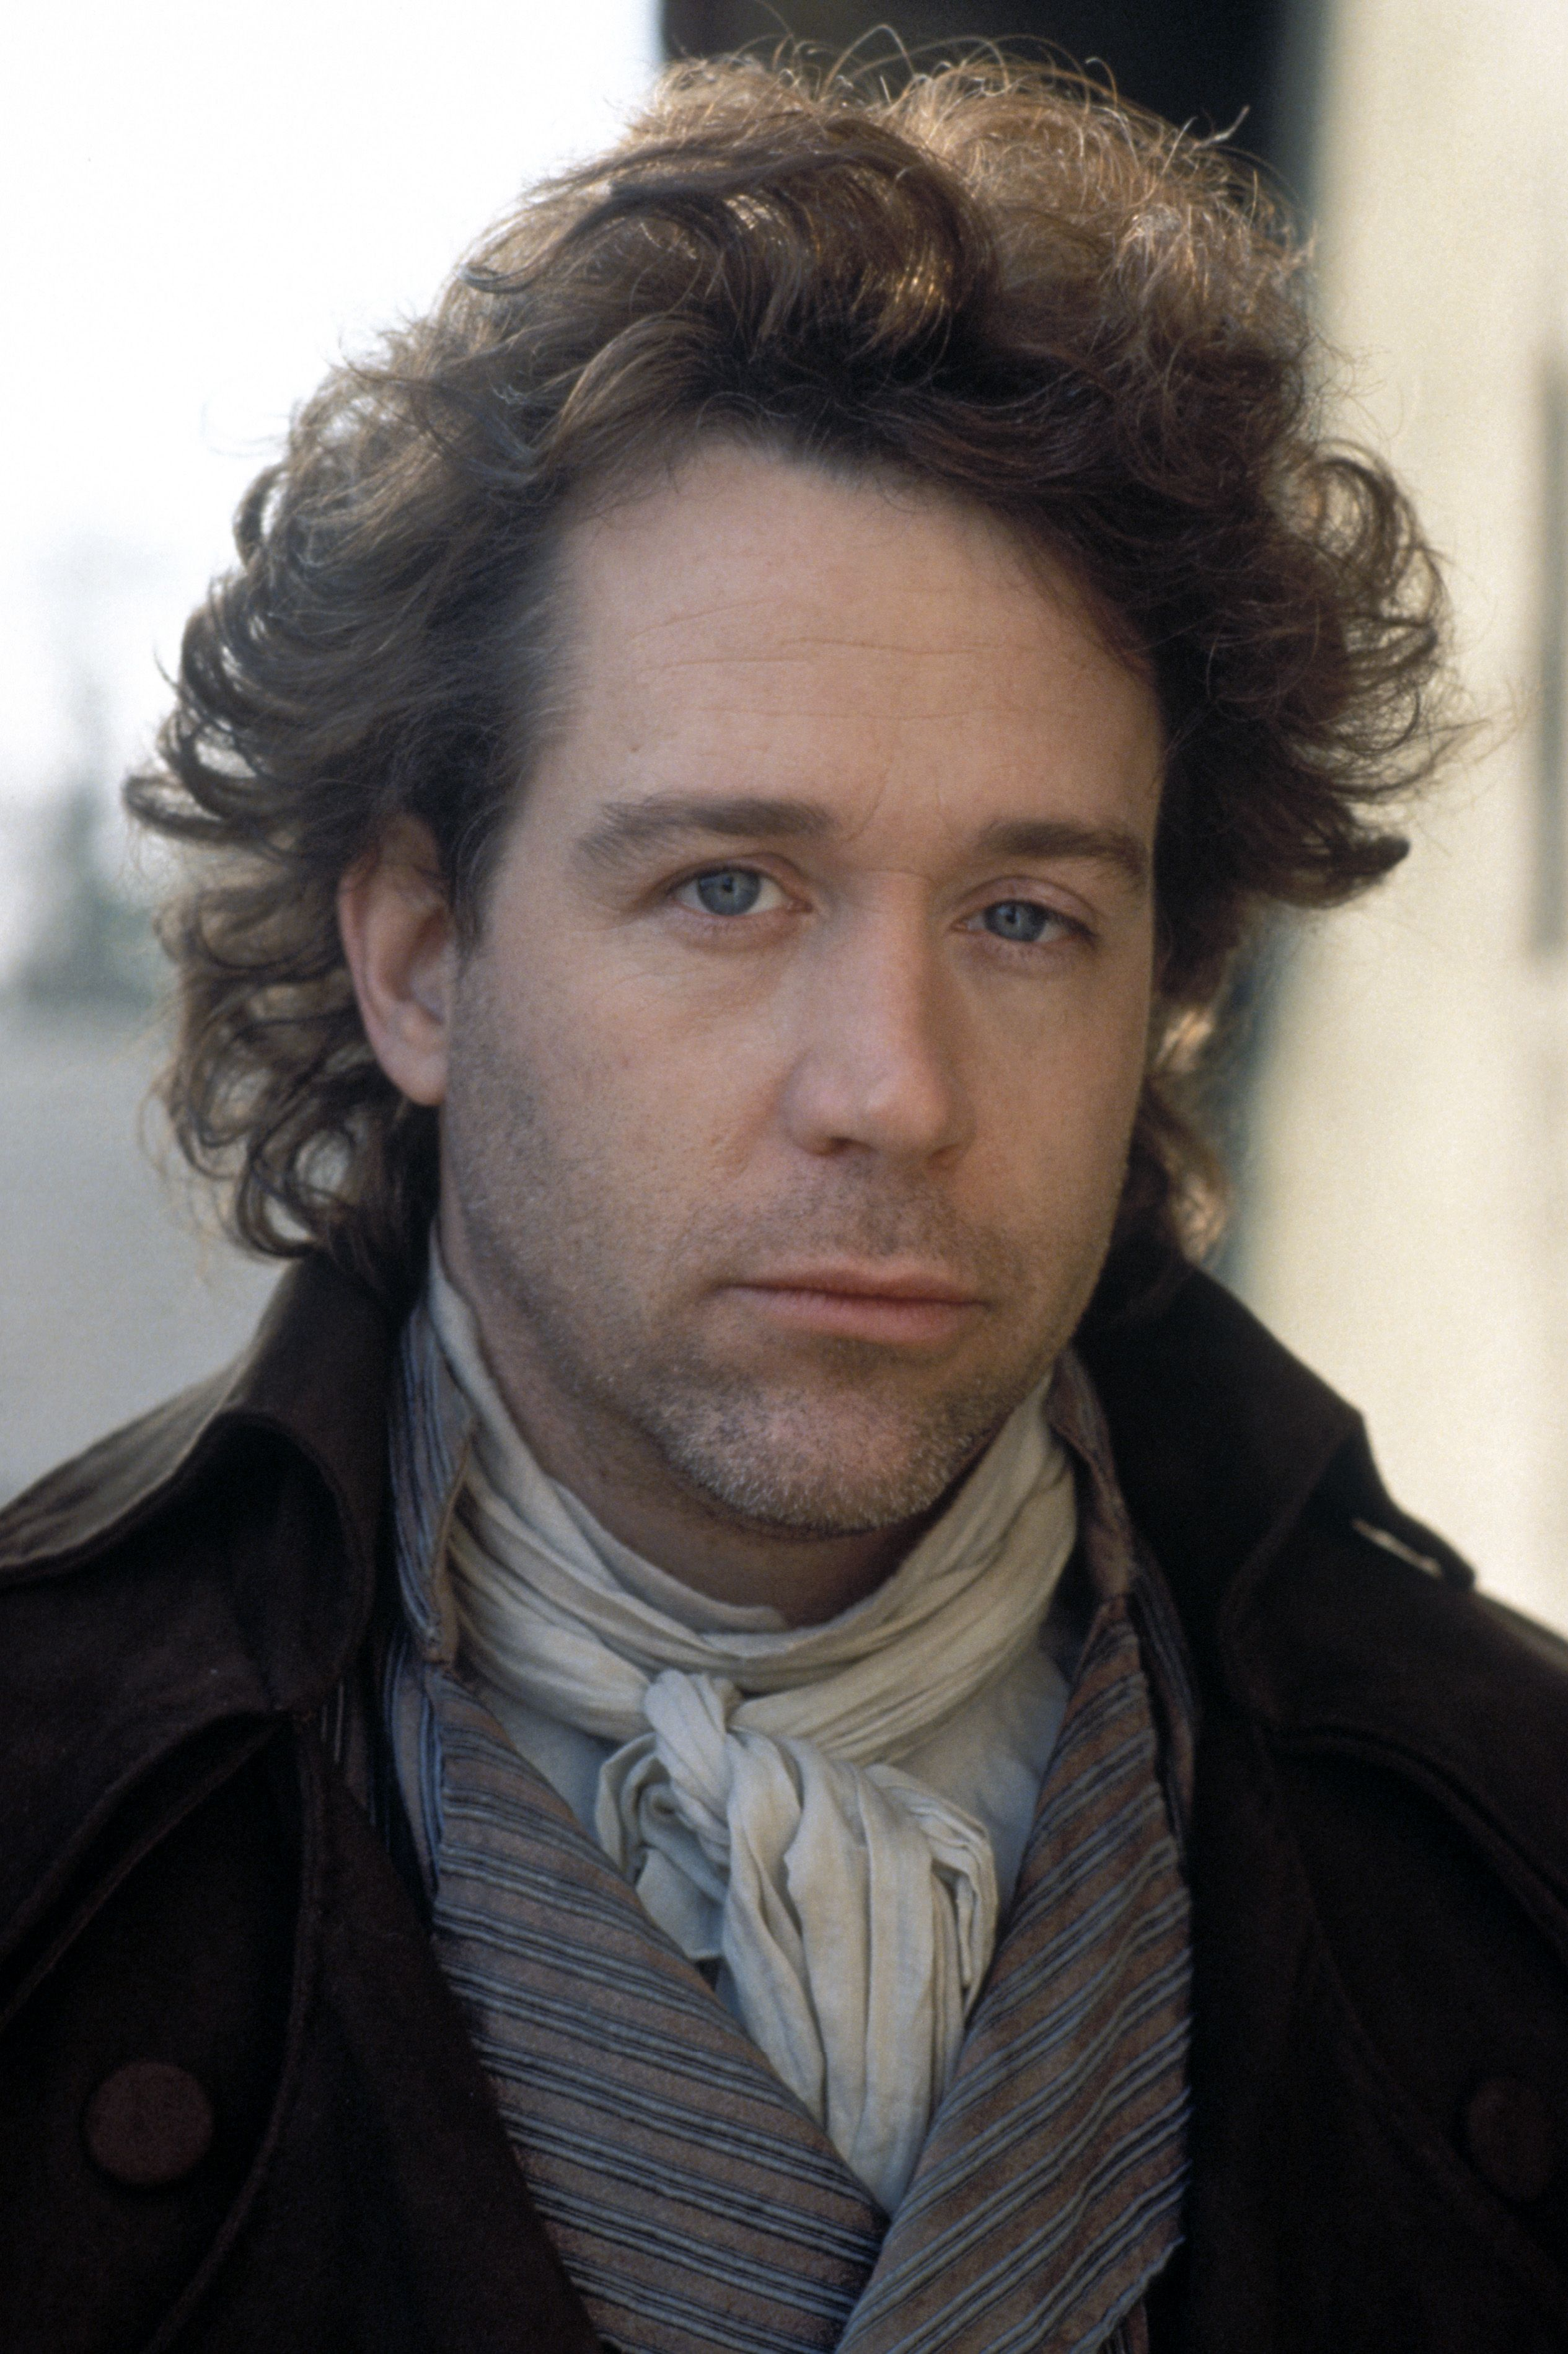 tom hulce death